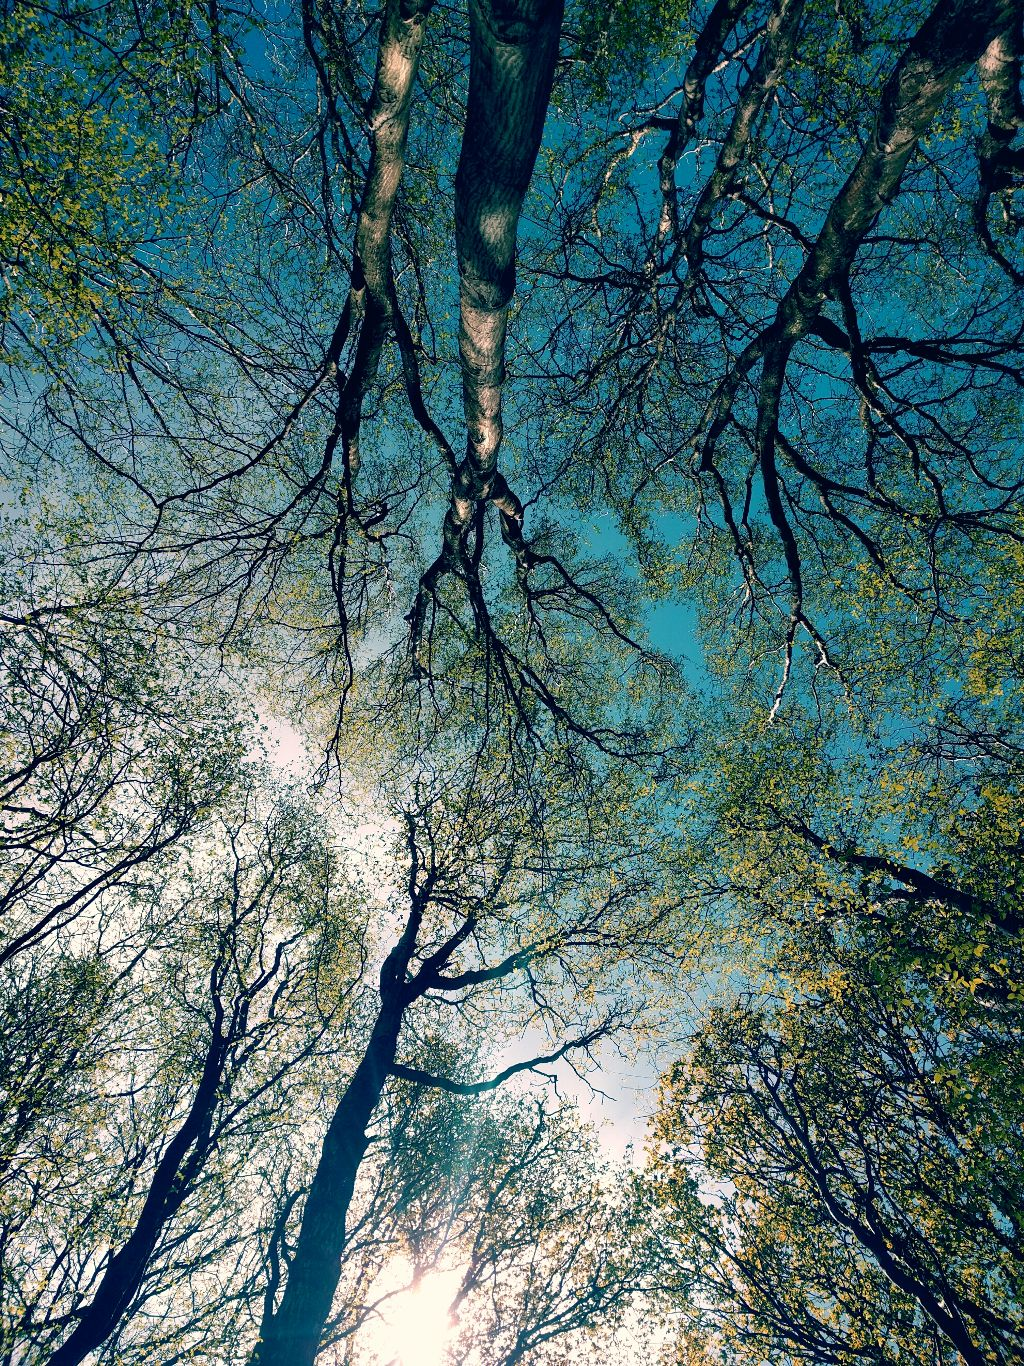 forest spring trees color life - Image by Nekoma